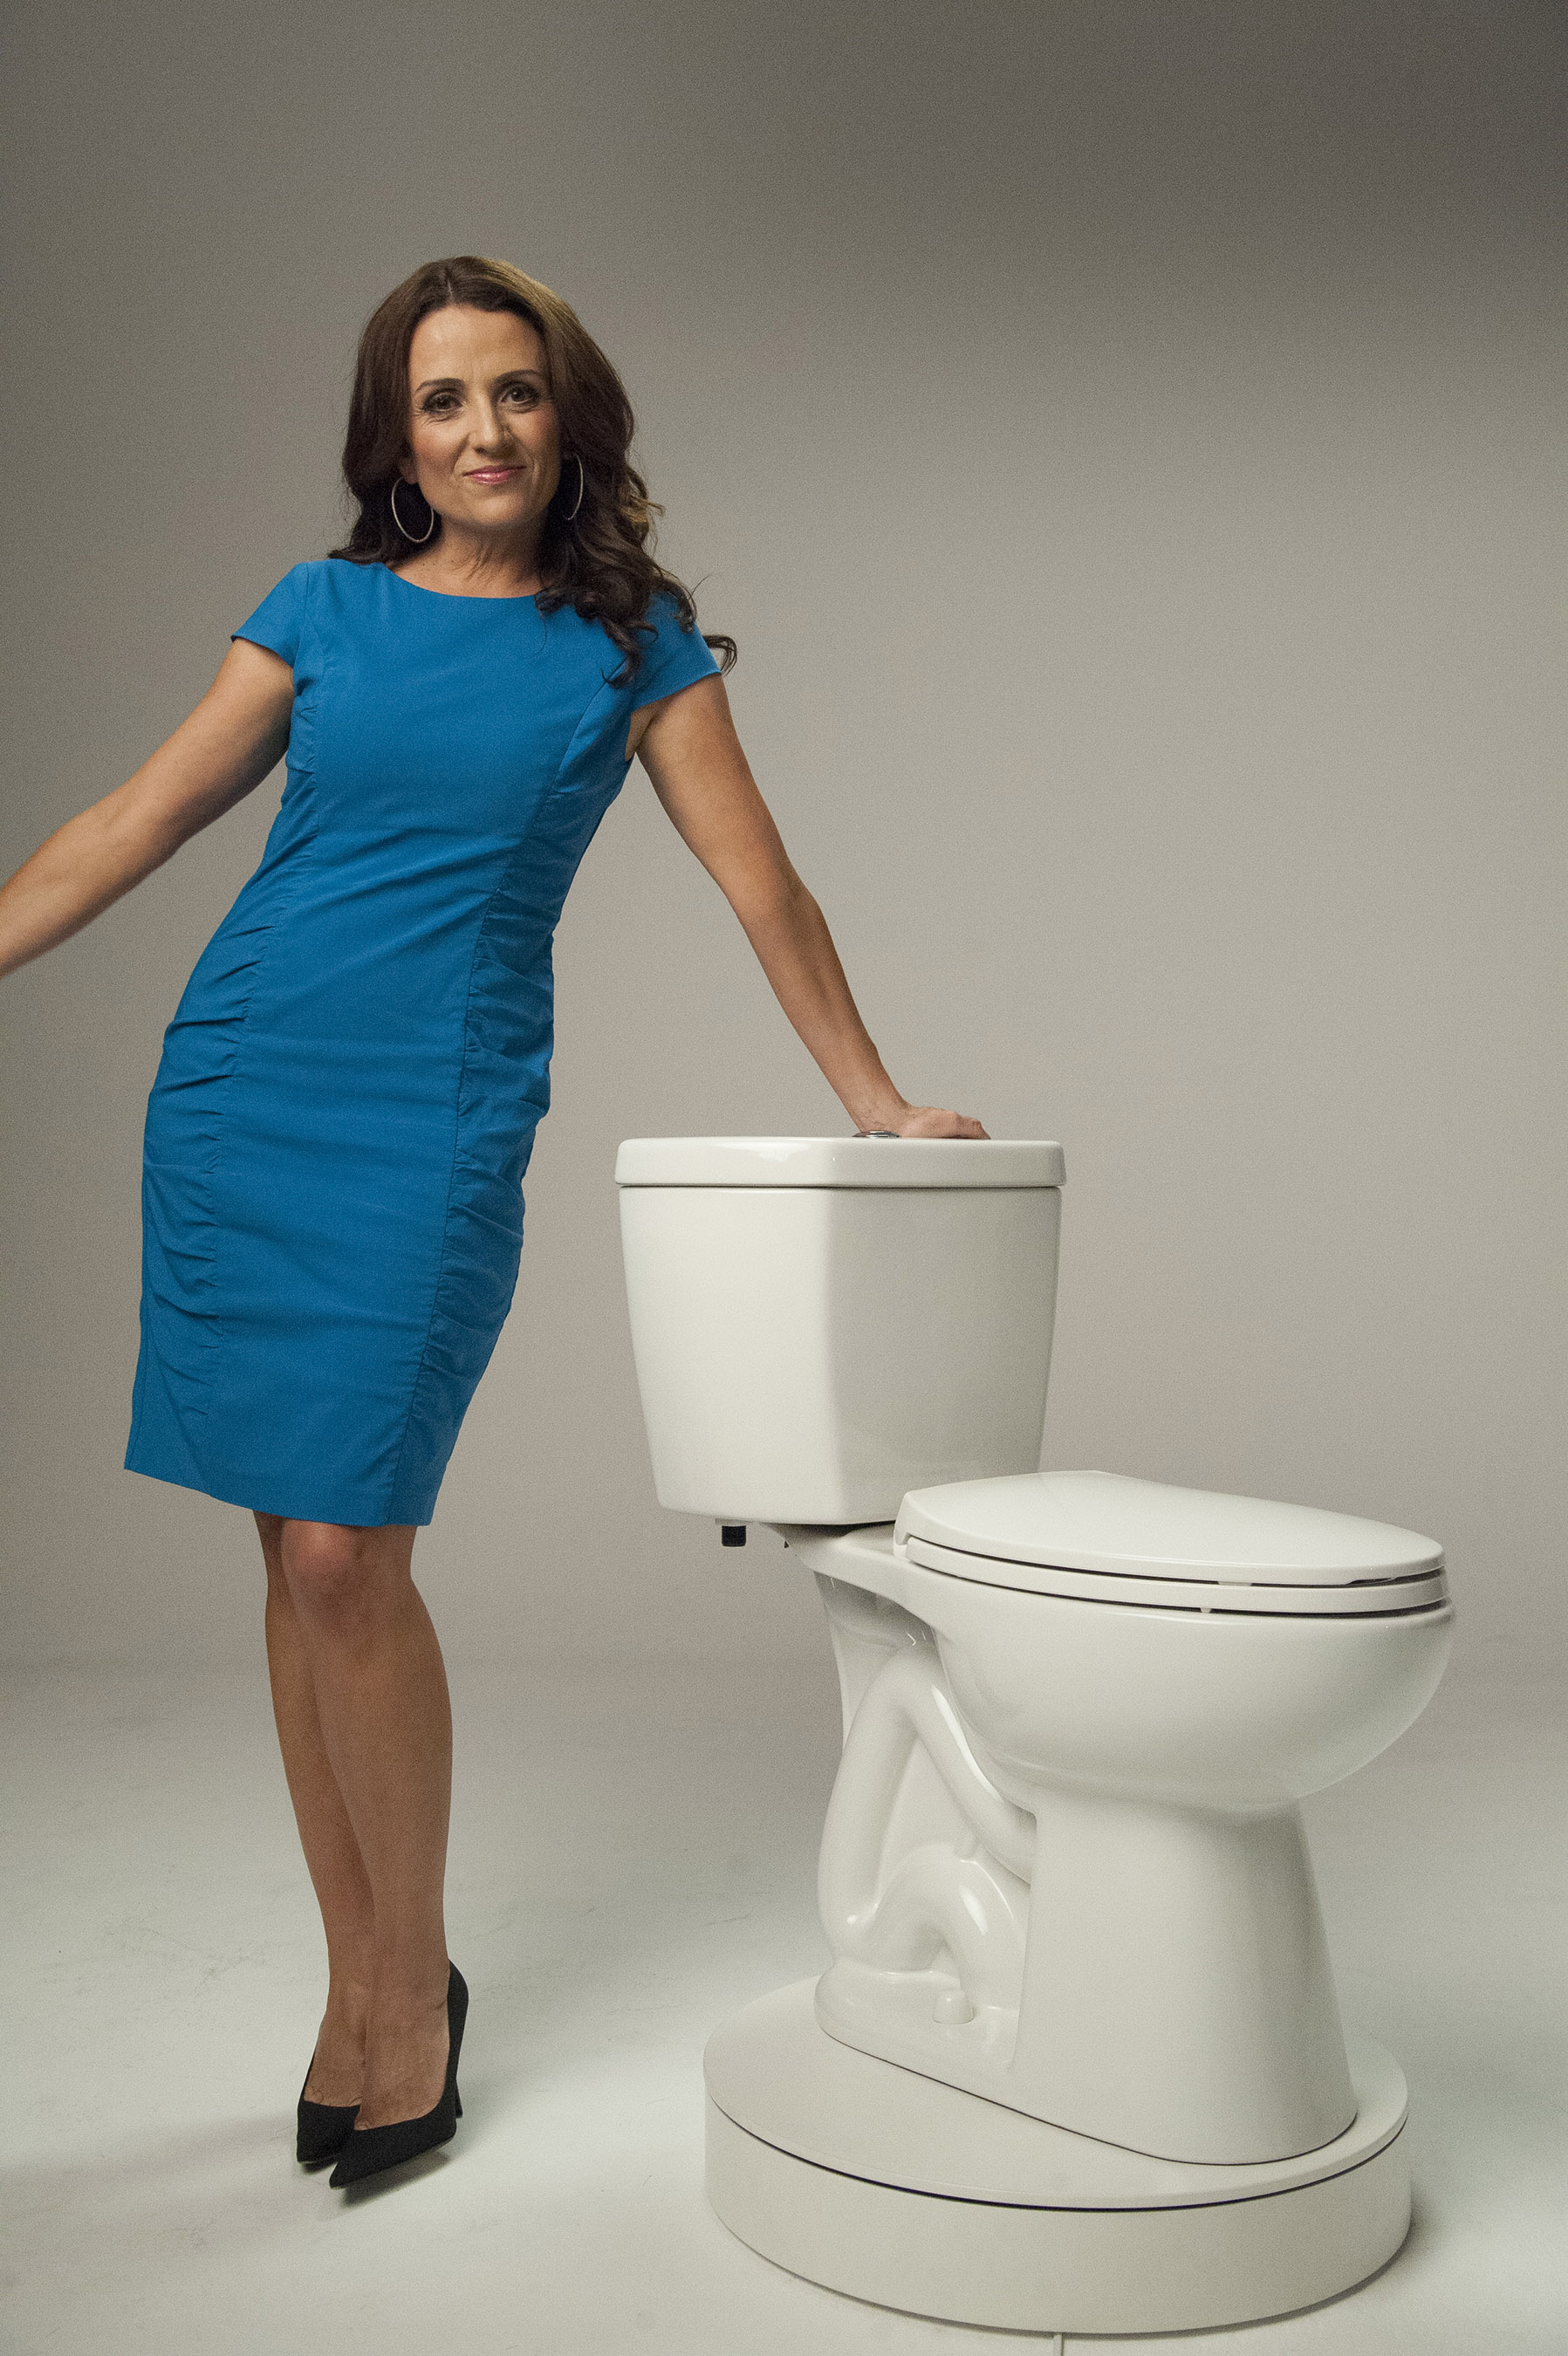 """Bravo's Jenni Pulos of """"Flipping Out"""" is partnering with Niagara Conservation Corp. to get people saving water and money with every flush for the #WhatTheFlush water-conservation campaign."""